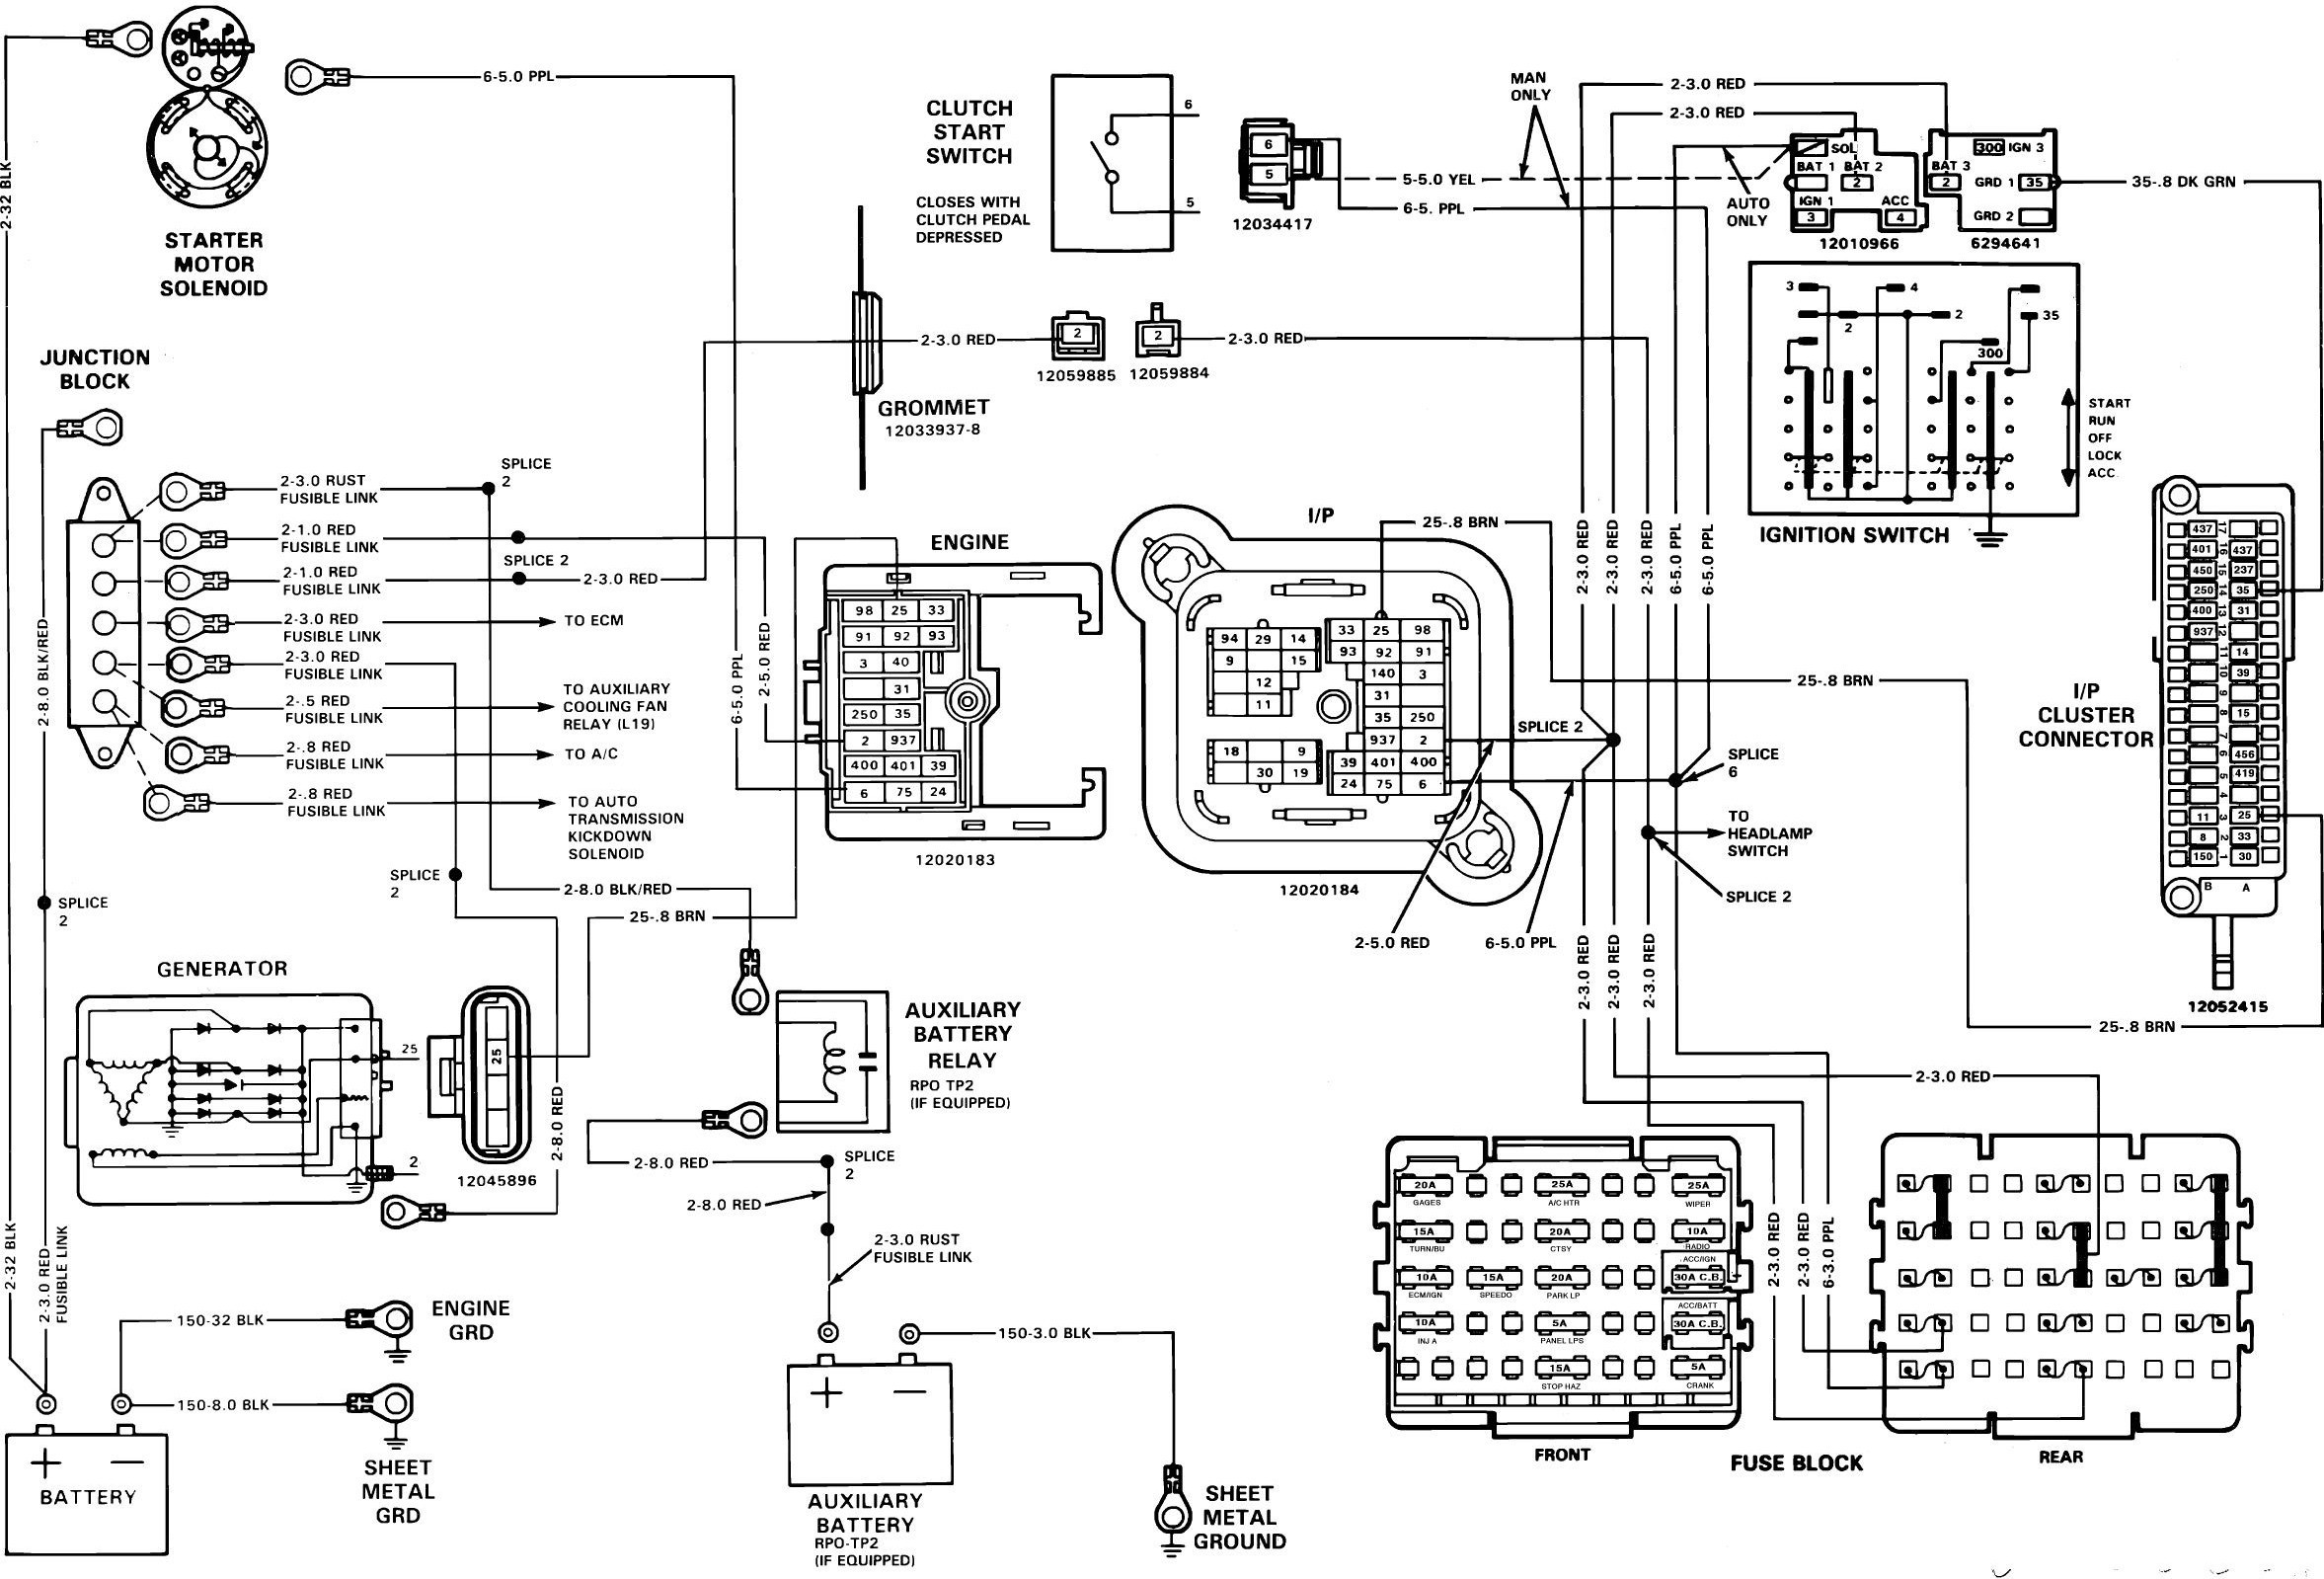 89 chevy k1500 wiring diagram circuit diagram symbols \u2022 1989 geo metro wiring diagram 1989 chevrolet k1500 wiring diagram data wiring diagrams u2022 rh progcode co 1989 chevy k1500 wiring diagram 89 chevy truck radio wiring diagram